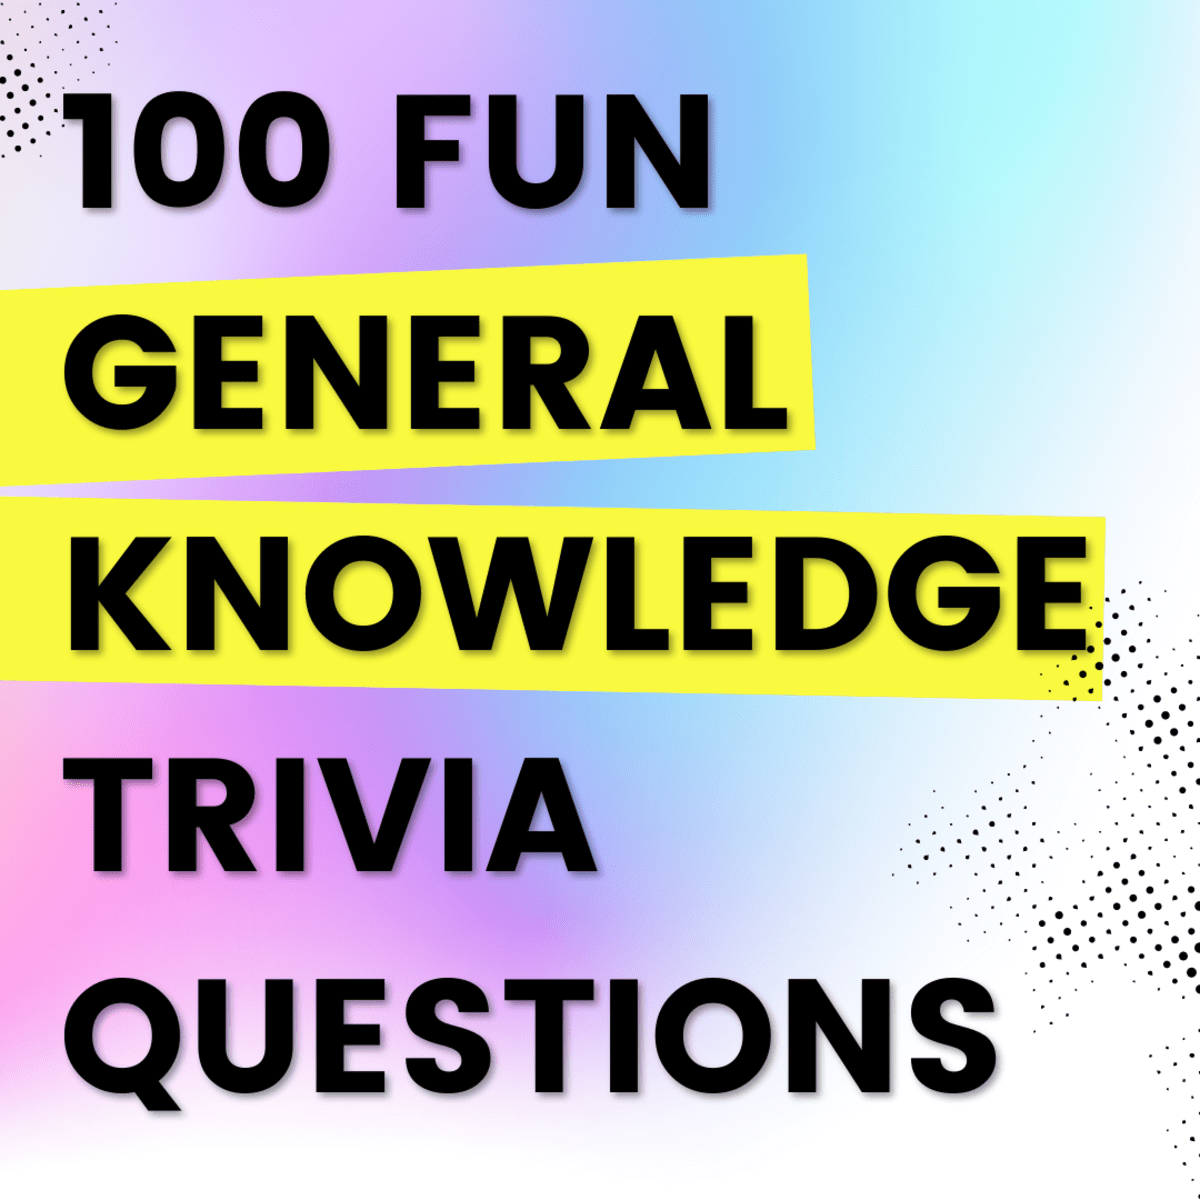 100 Fun Trivia Quiz Questions With Answers Hobbylark Games And Hobbies